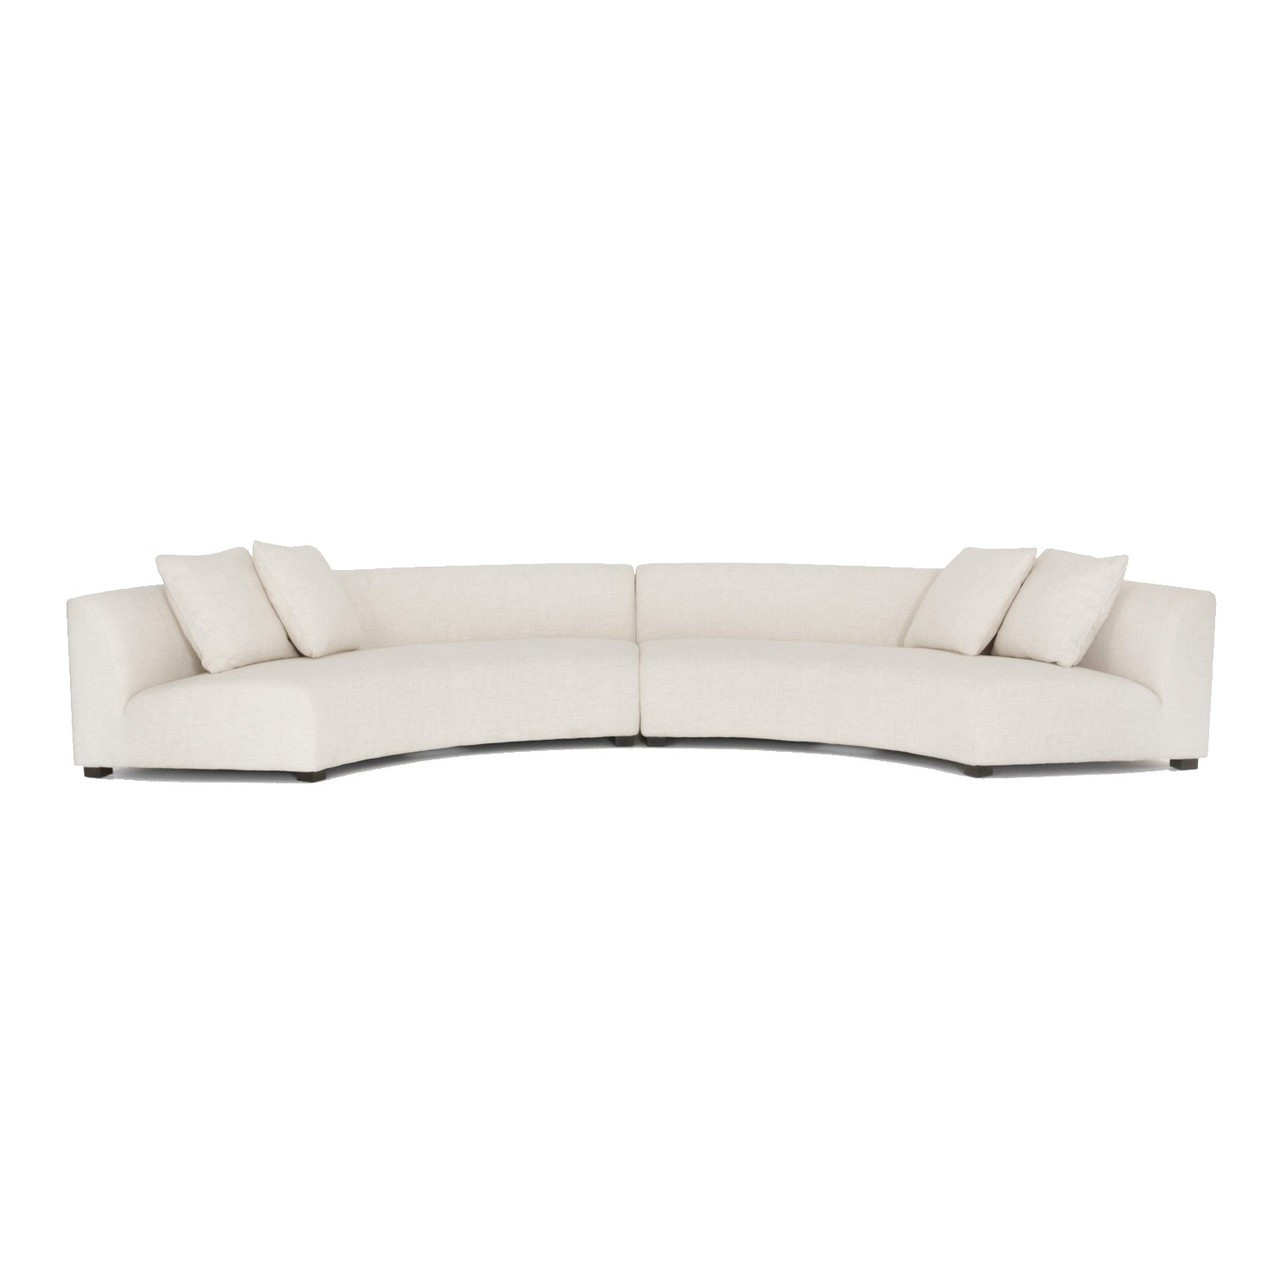 Liam Modern Cream 2 Piece Curved Sectional Sofa